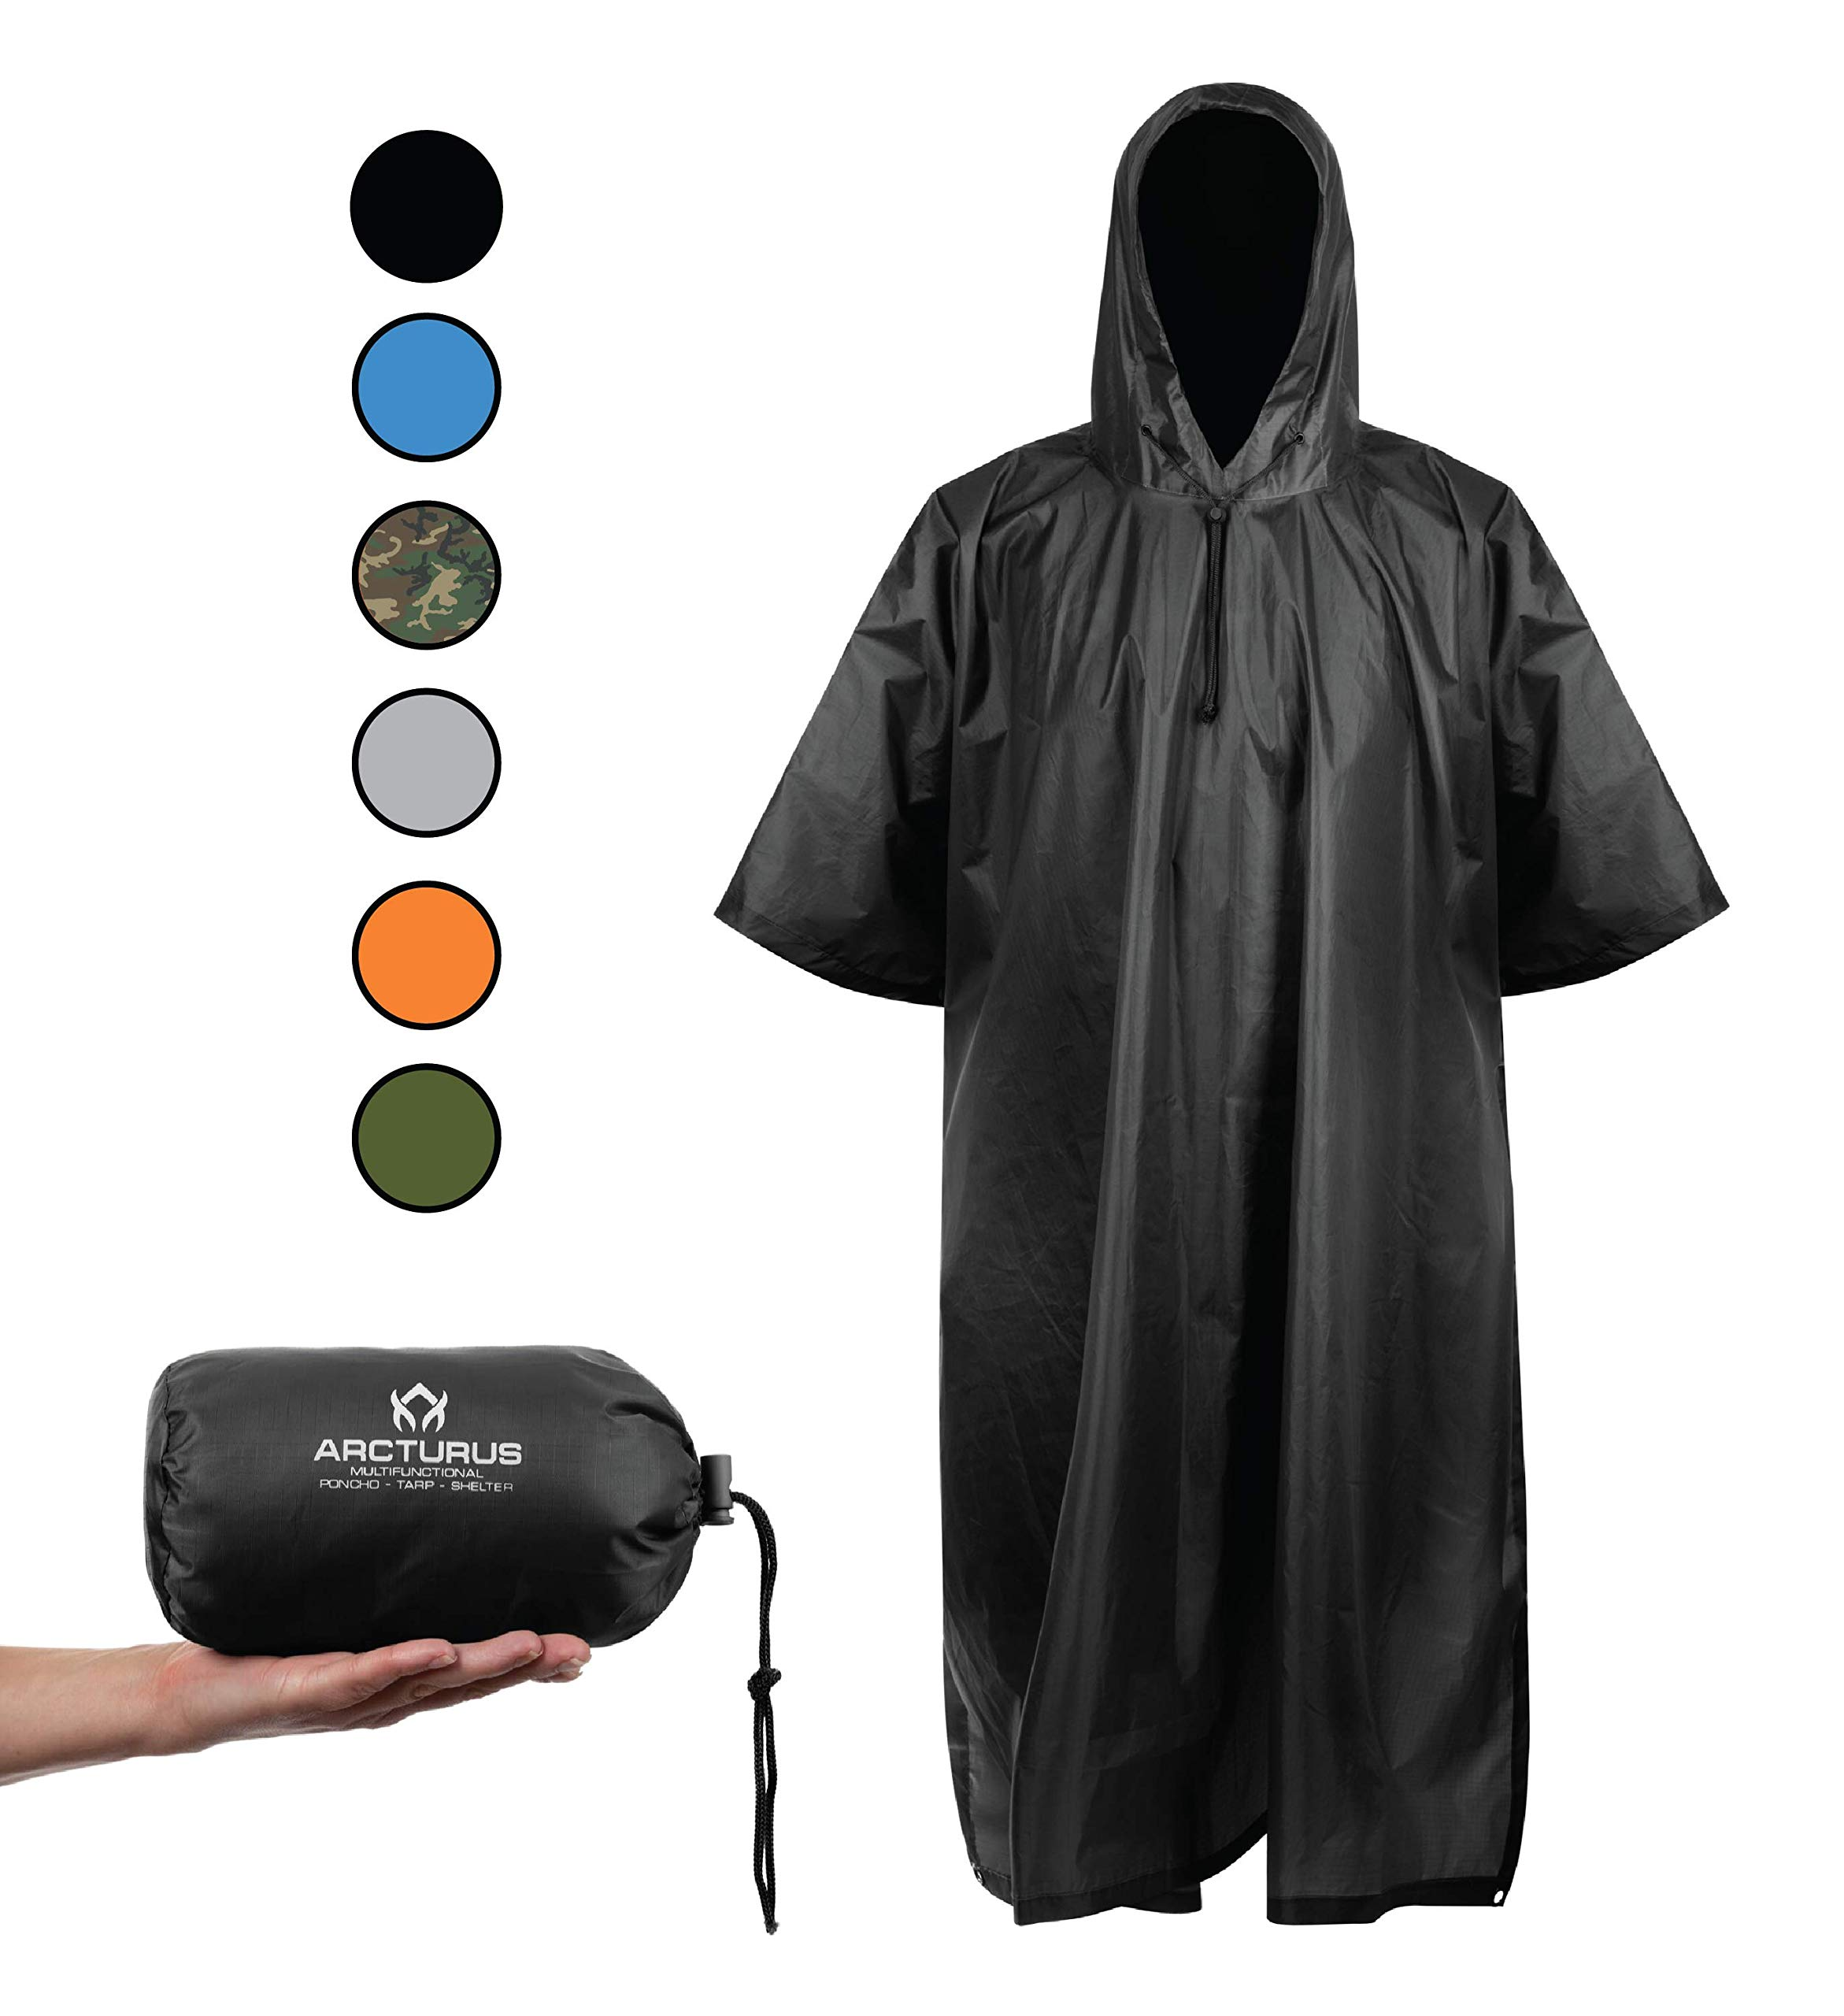 Arcturus Rain Poncho: Lightweight Ripstop Nylon Poncho with Adjustable Hood. Multipurpose, Large, Waterproof Design - Makes a Great Tarp, Backpacking Ground Cloth & Emergency Shelter (Black) by Arcturus